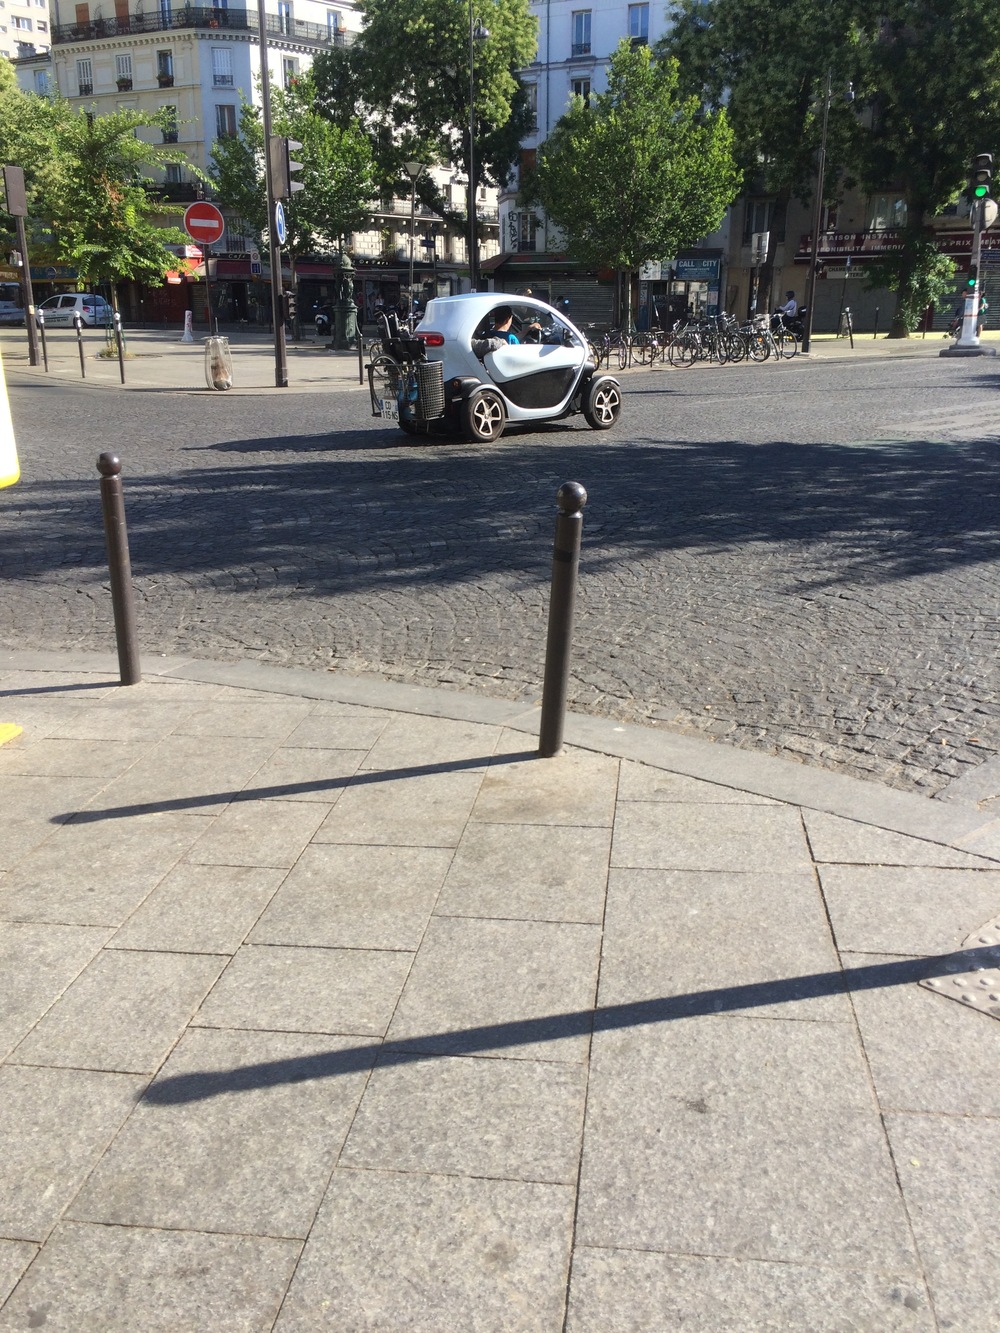 Elliot spotted this Twingo, complete with wheelchair on the back